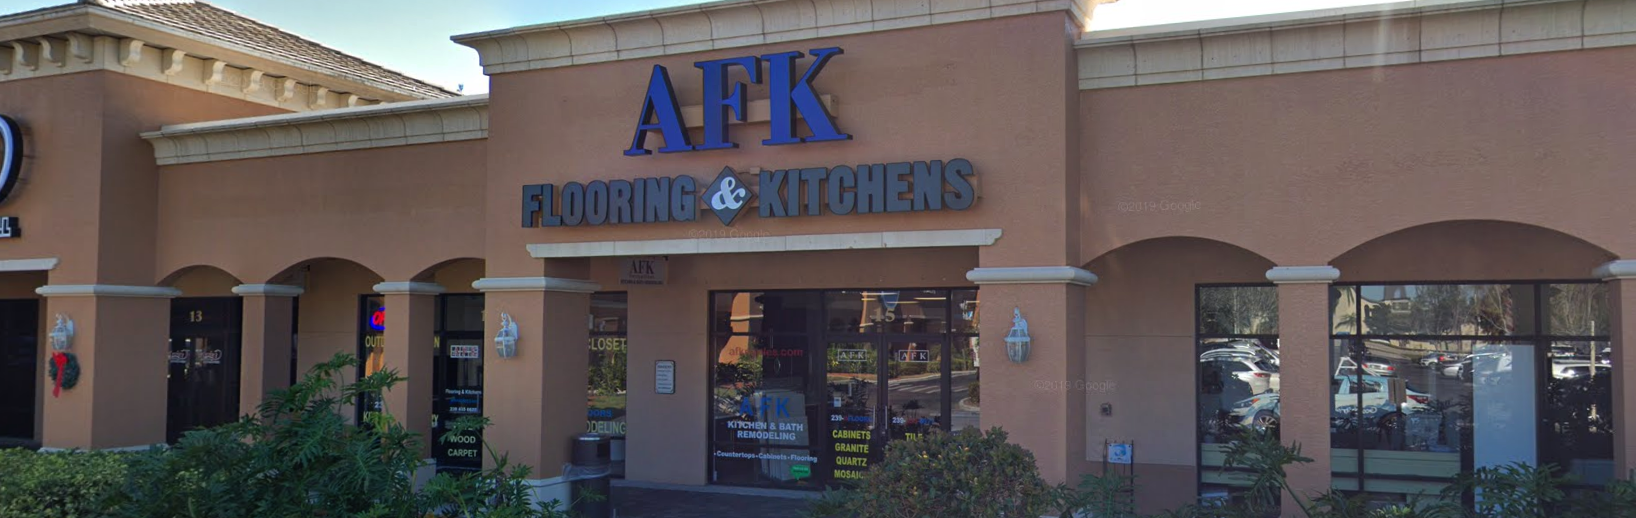 Afk Flooring And Kitchens - 2700 Immokalee Rd, Naples, FL 34110